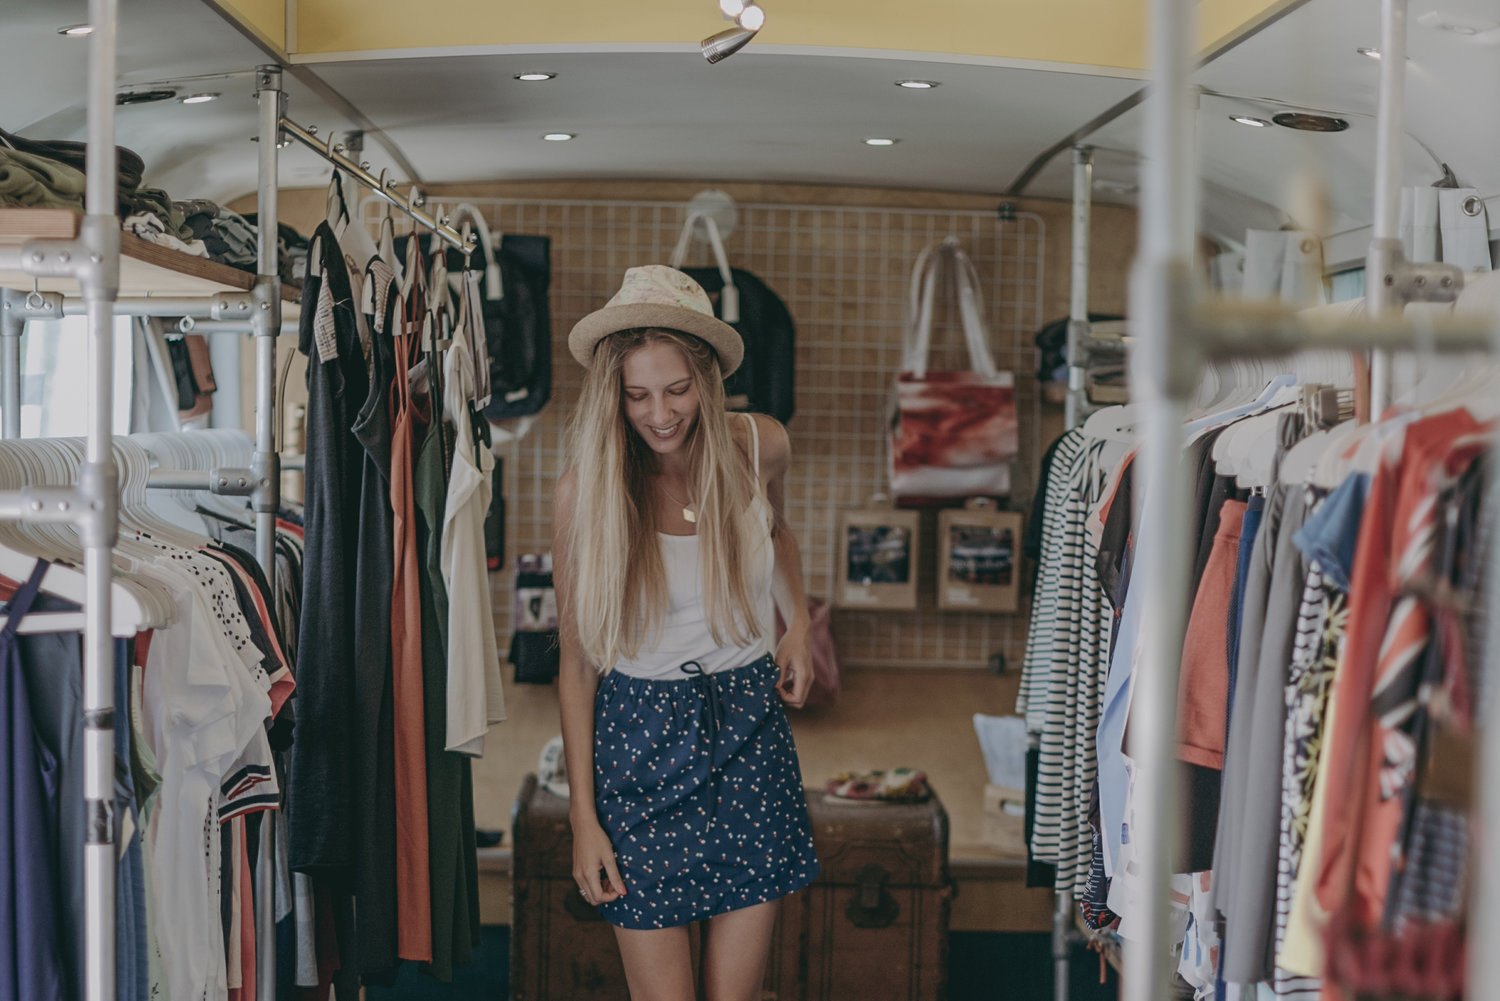 2a3b58af64f9 Fashion - Blogger - Luxembourg - Brussels - ANNA KATINA